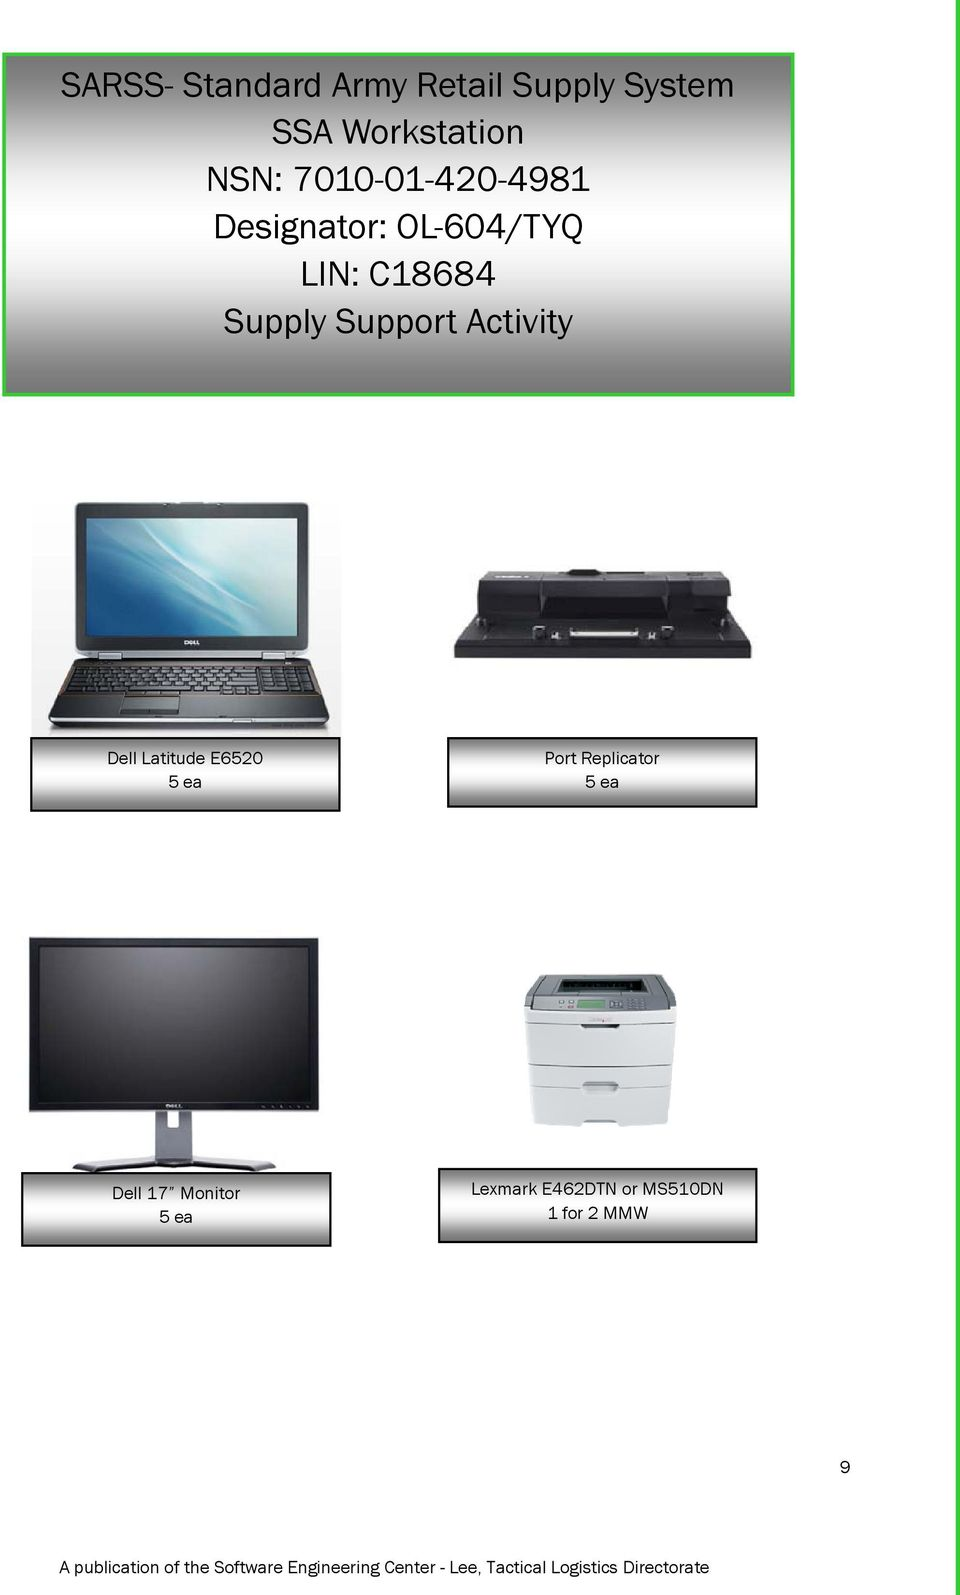 Dell Laptop Docking Station E7440 manual Manuals…